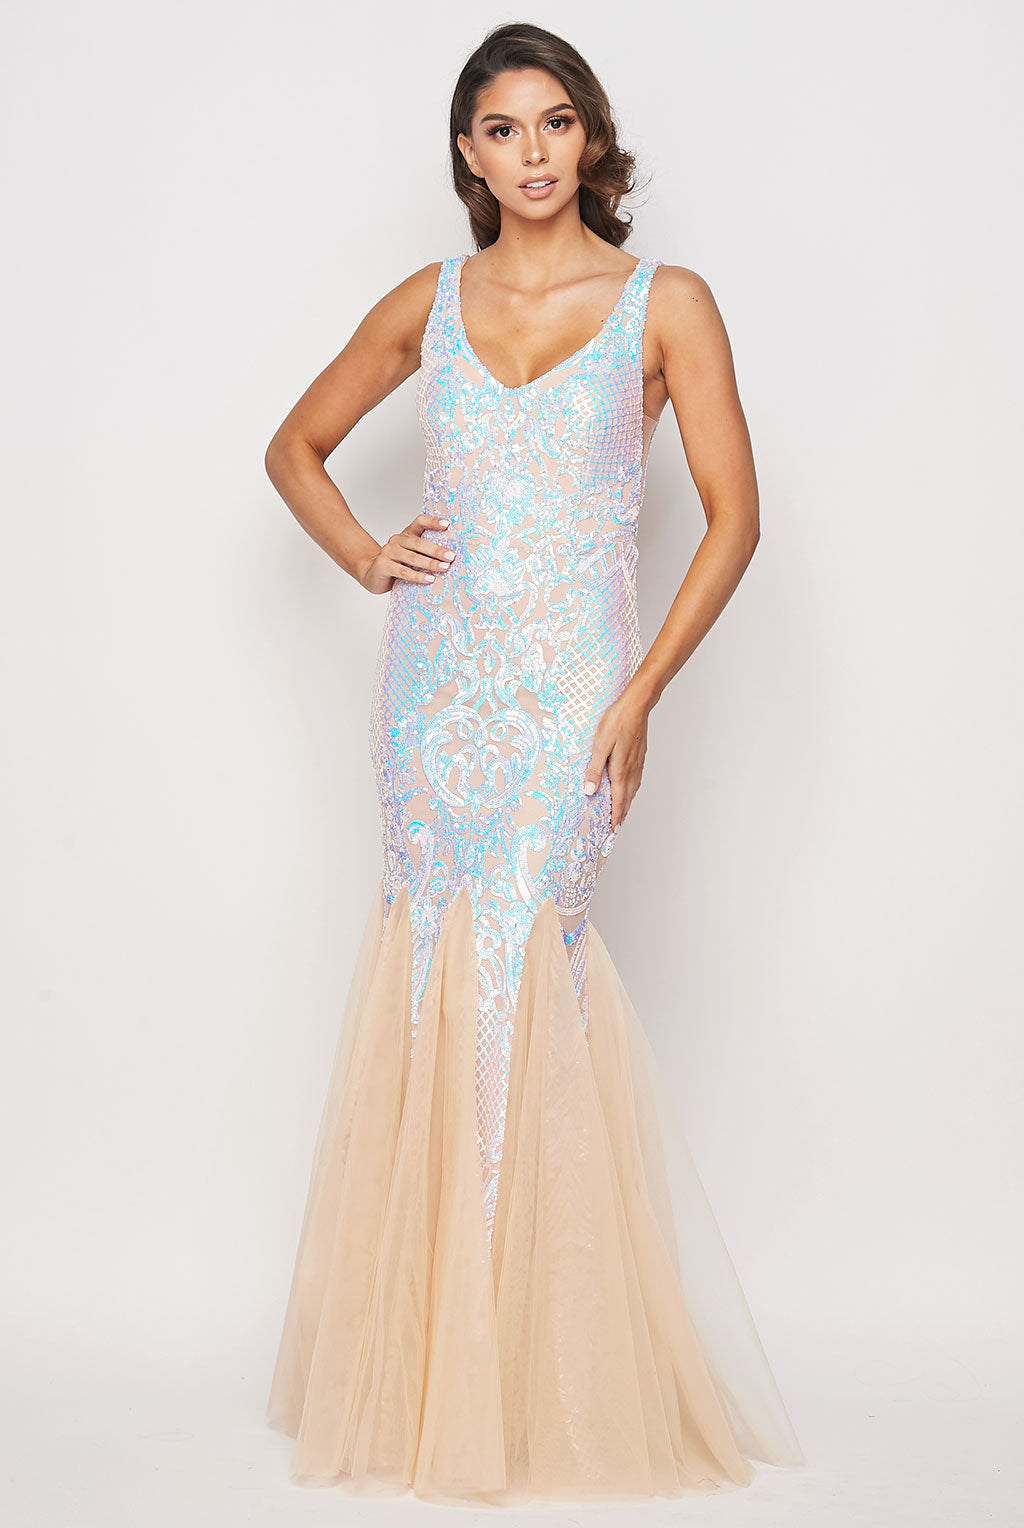 Teeze Me | Multi Color Sequin Mermaid Gown | Nude Multi